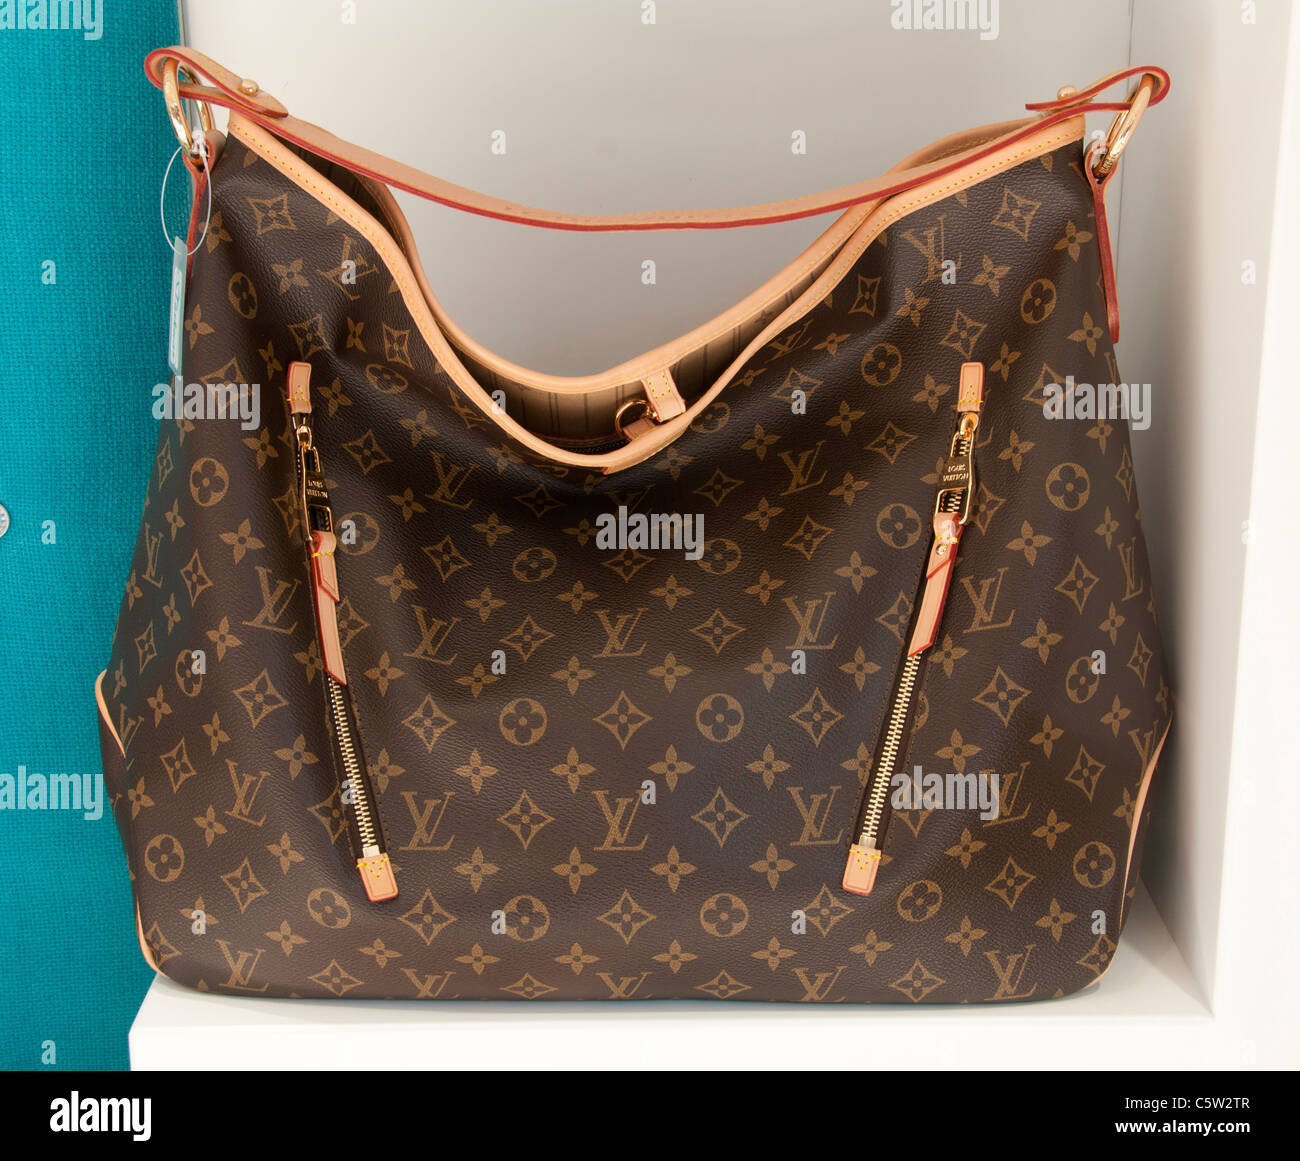 3bad4782b7c1 Louis Vuitton mock fake imitation forgery sham bag bags Turkey Turkish -  Stock Image